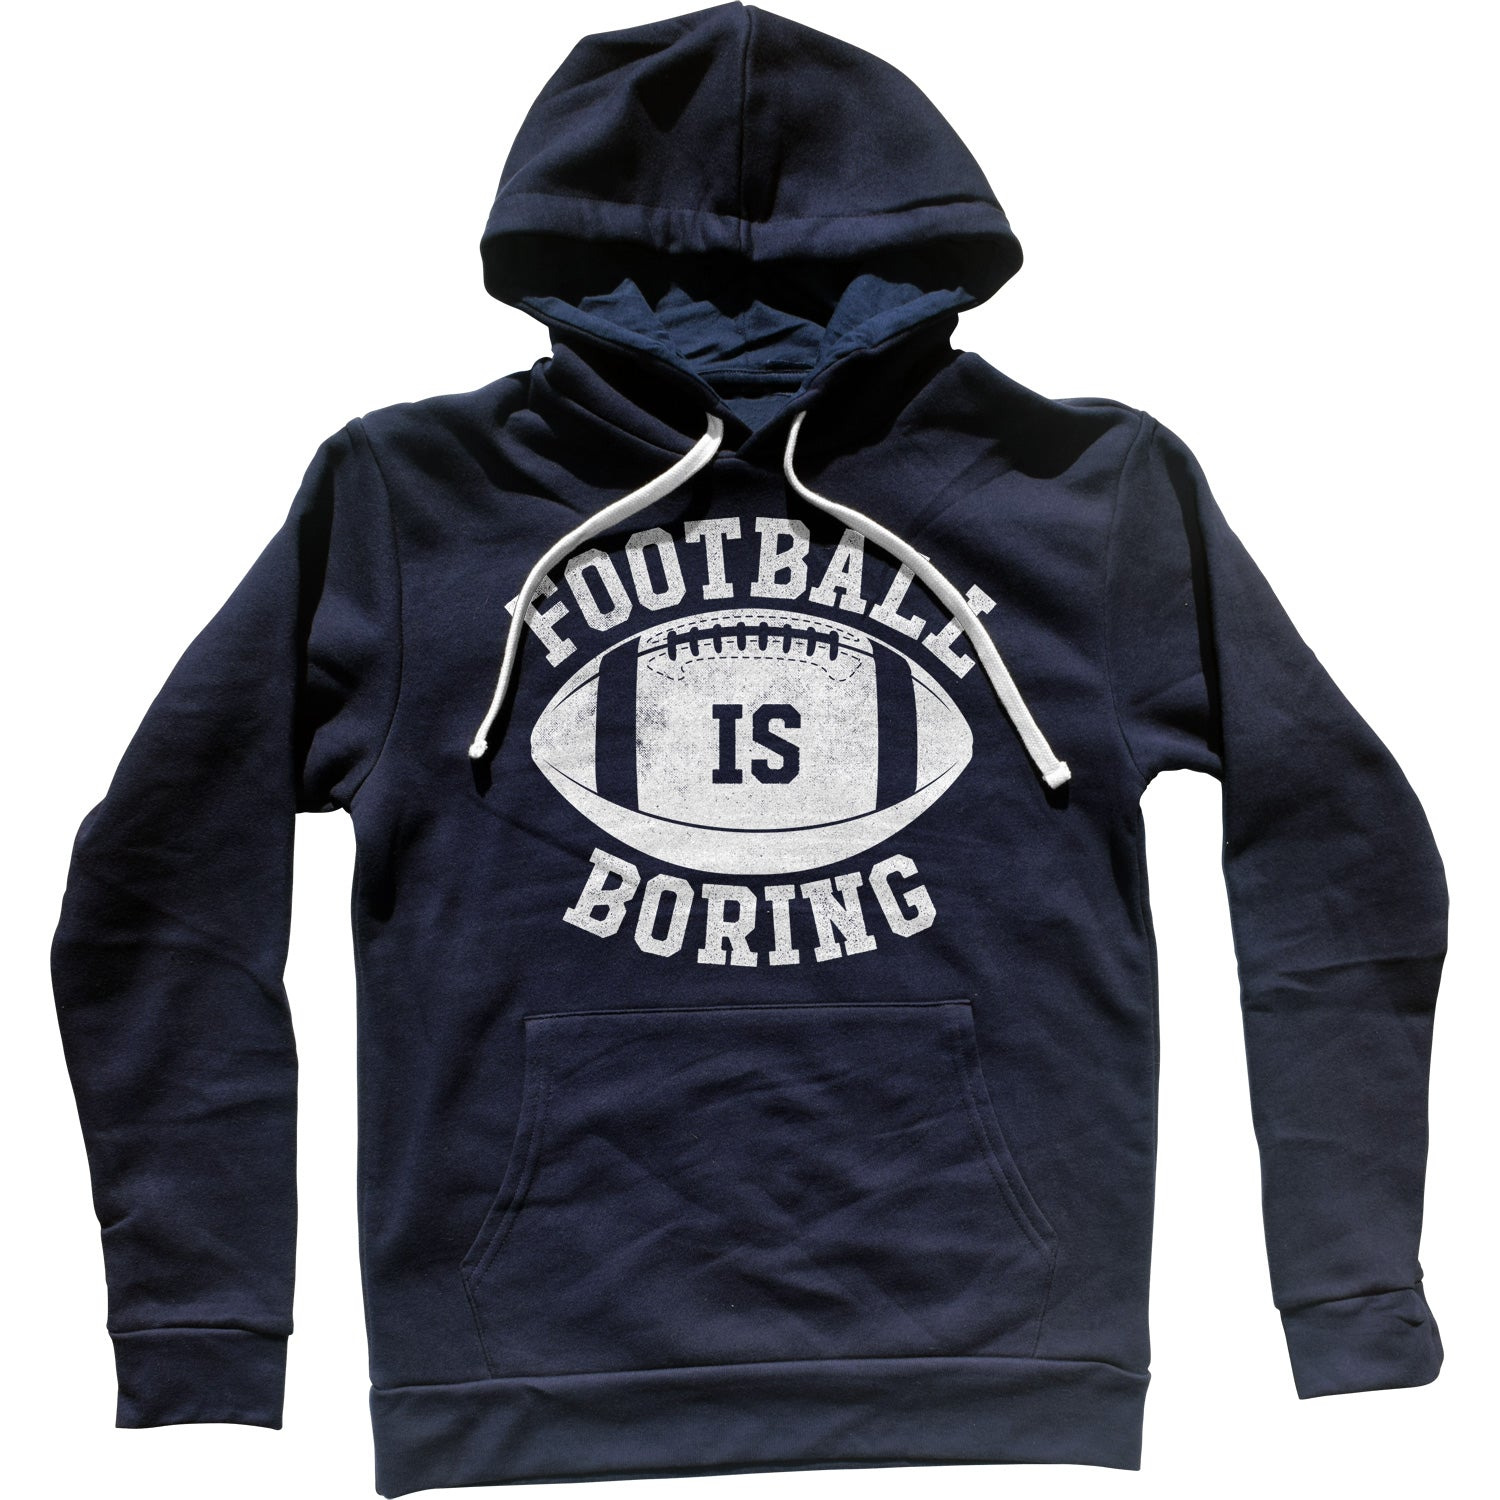 Football is Boring Unisex Hoodie